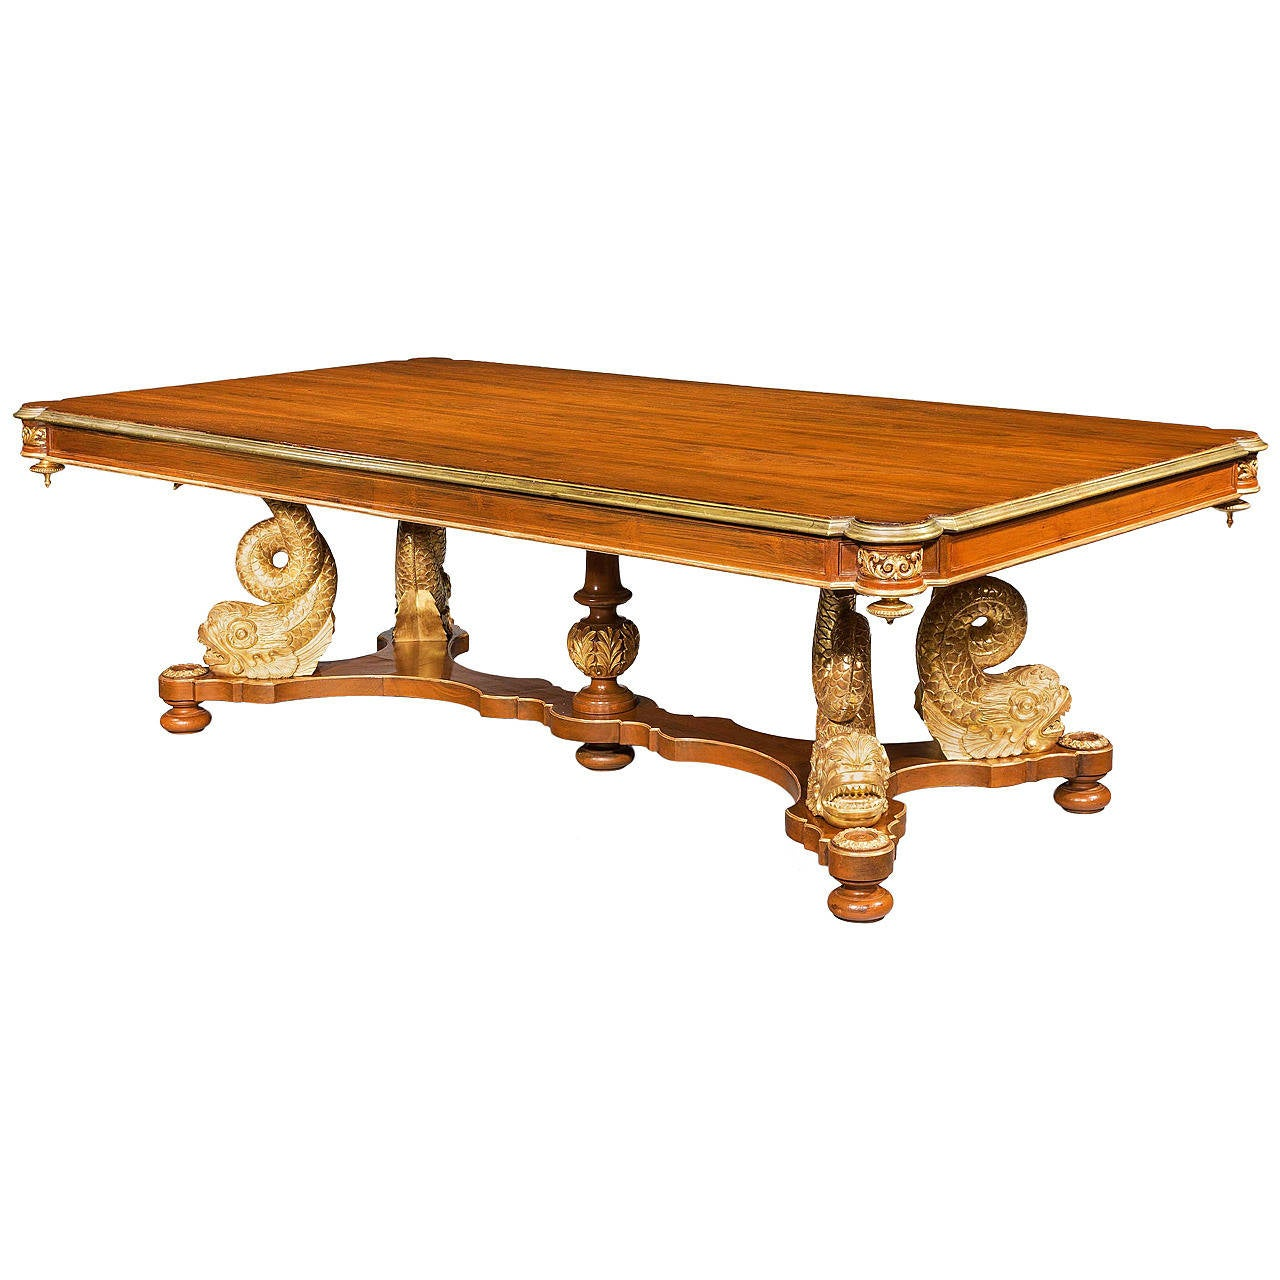 A rare 19th Century mahogany and parcel gilt Centre Table